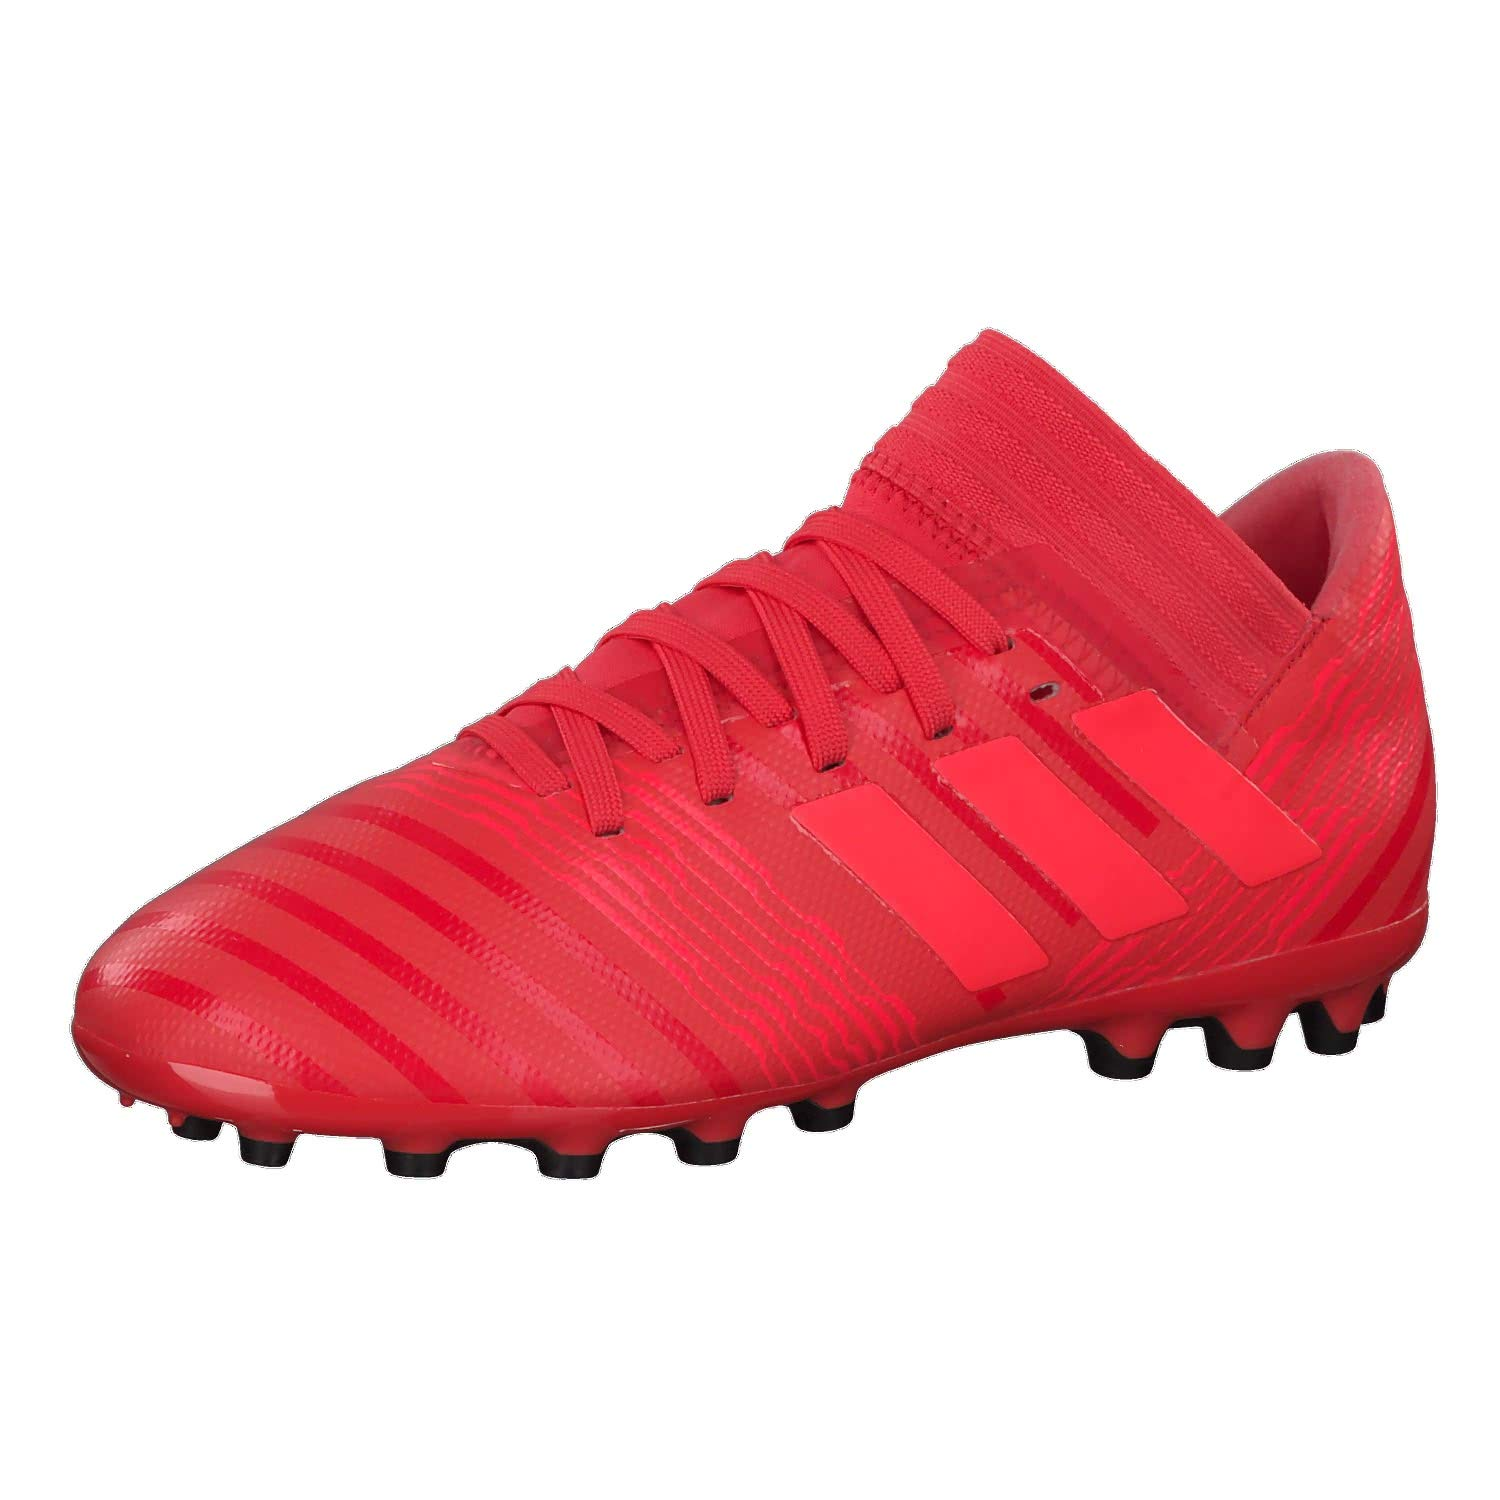 Adidas Nemeziz 17.3 AG, Chaussures de Football Mixte Reacor/Redzes/Cblack) Enfant 32 EU|Rouge (Reacor/Redzes/Cblack Reacor/Redzes/Cblack) Mixte 24ee12